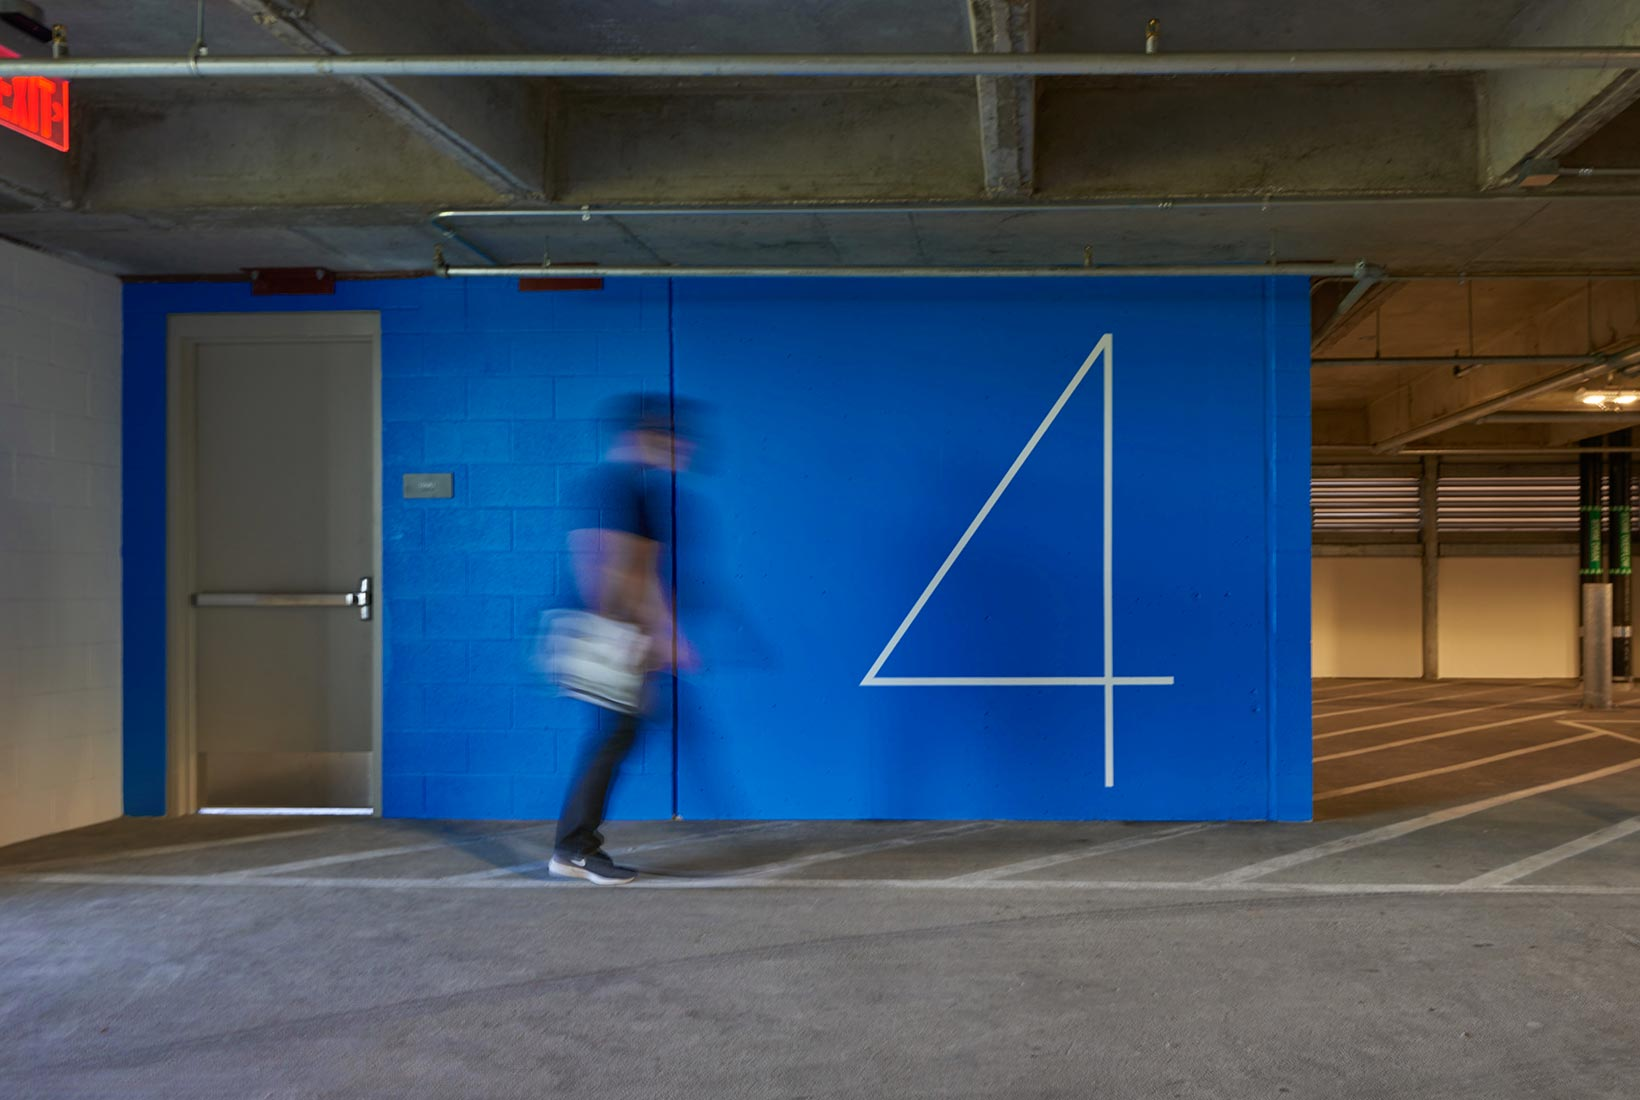 The-Richards-Group-Building-Signage-Parking-Garage-Floor-4-RBMM